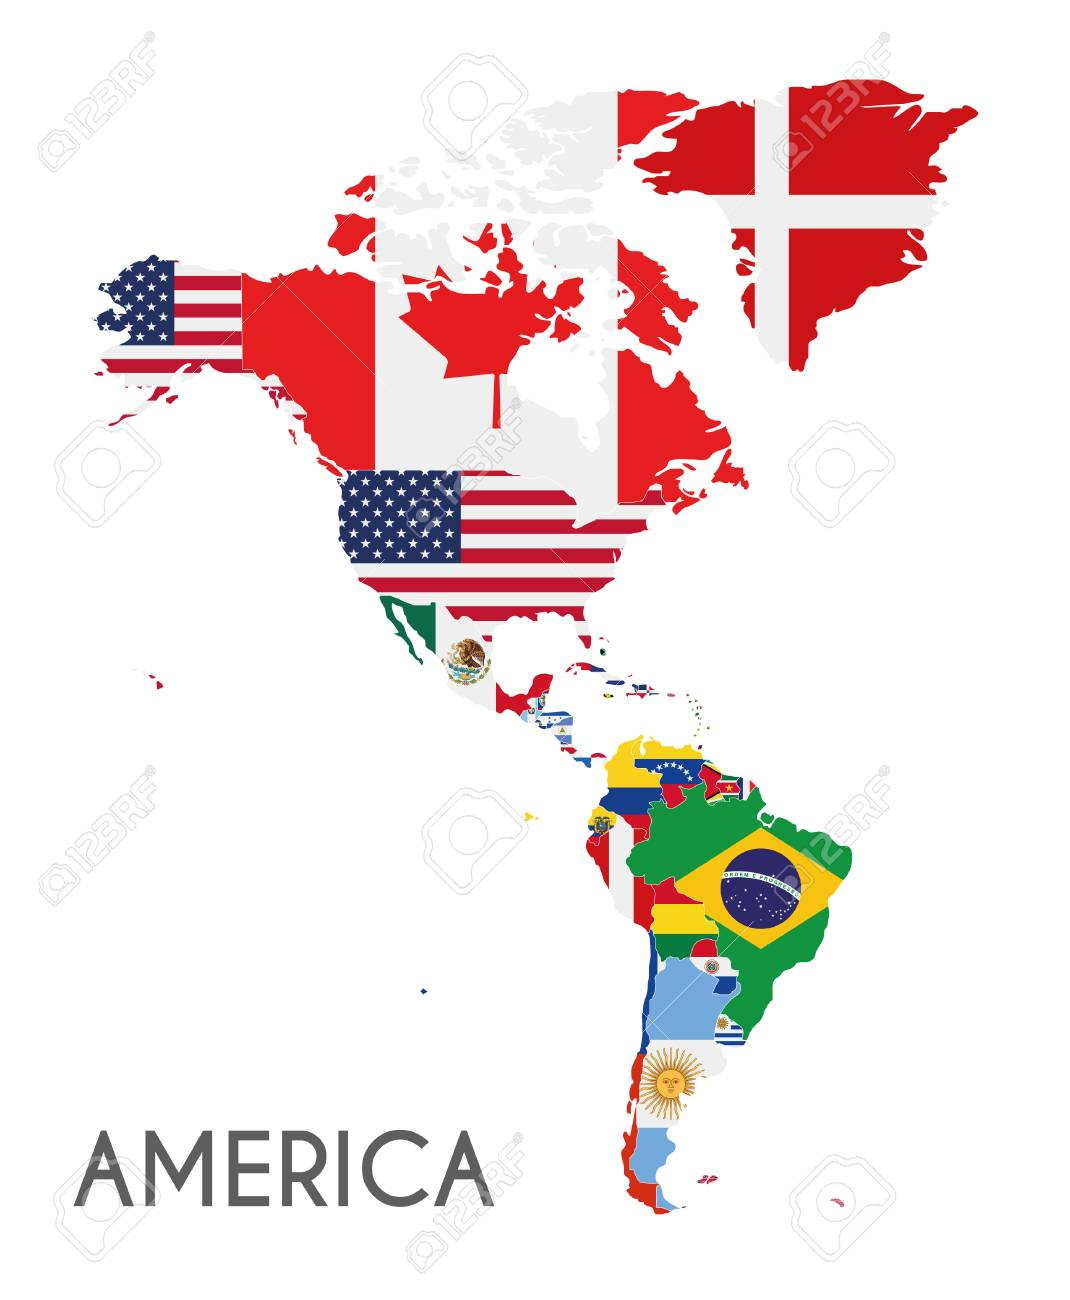 American Map Vector.Political America Map Vector Illustration With The Flags Of All